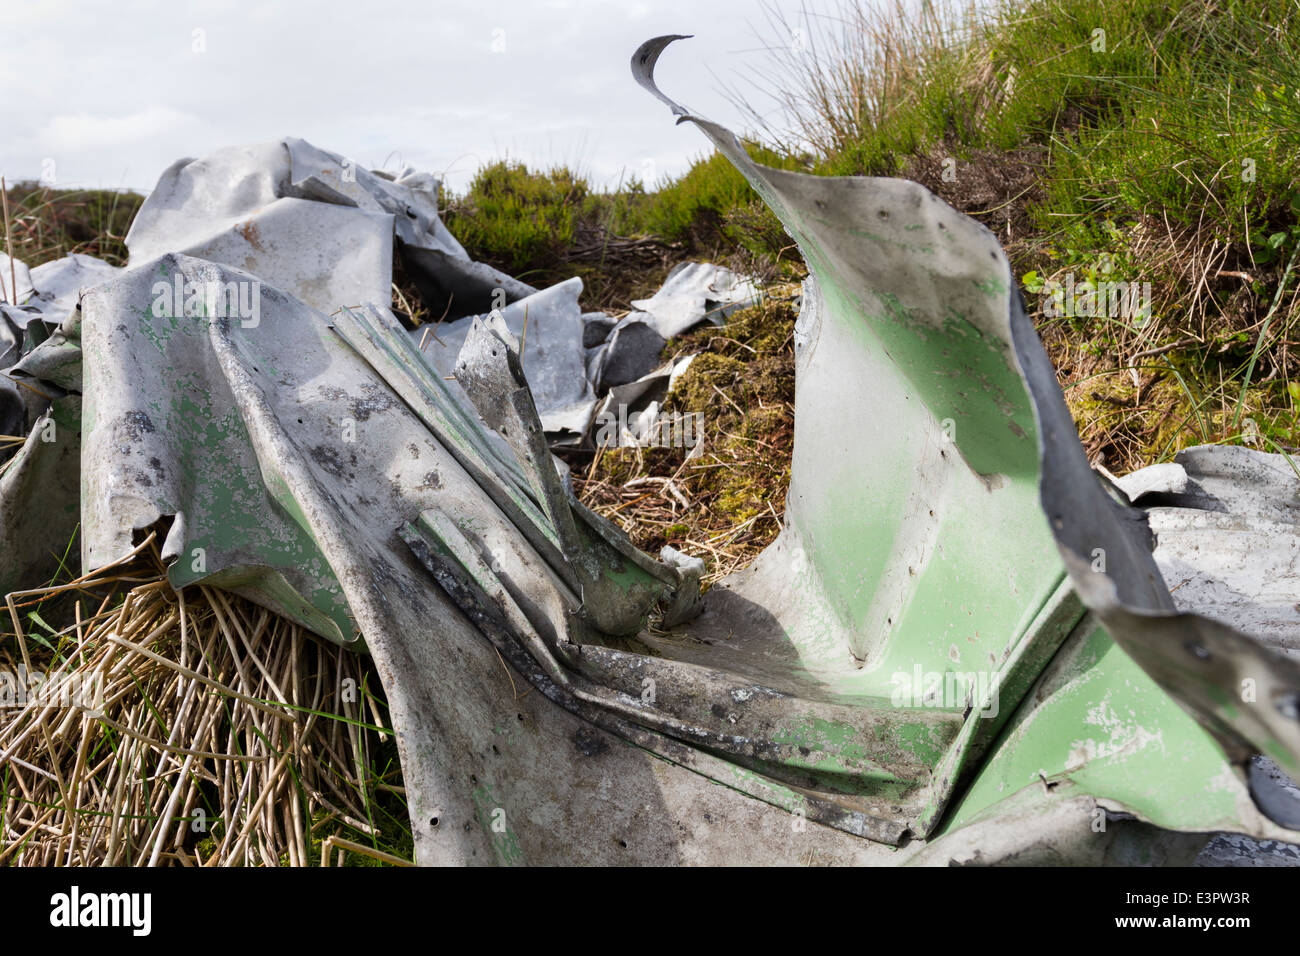 Remains of a Blenheim Mk1, L1252 Aircraft Which Crashed in Bad Weather on 26th October 1938 Lunedale, County Durham. Stock Photo